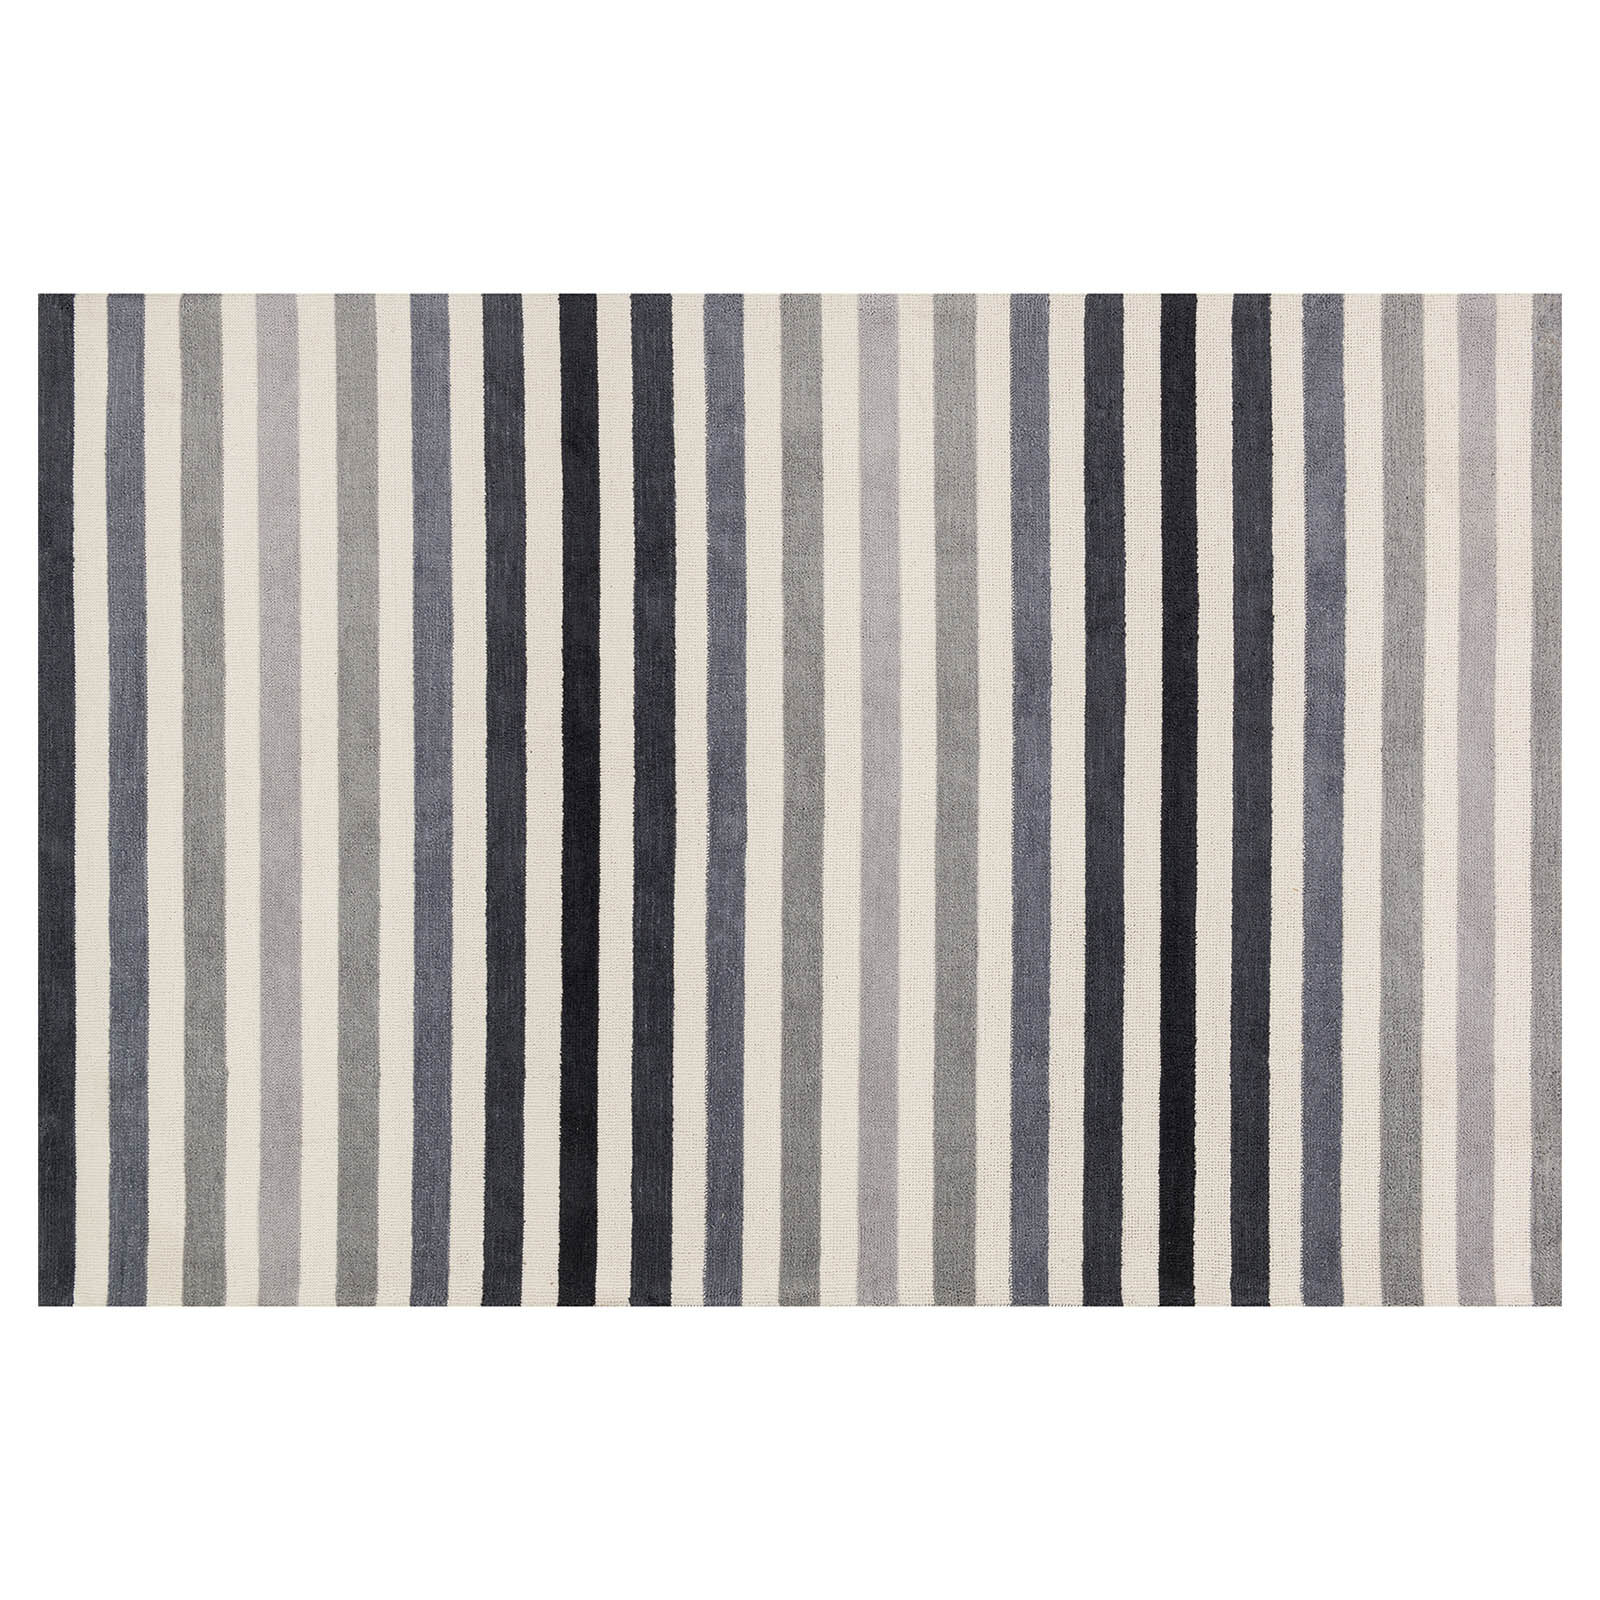 Area Rugs   At Home A300 Black and Grey Micro Stripe Rug